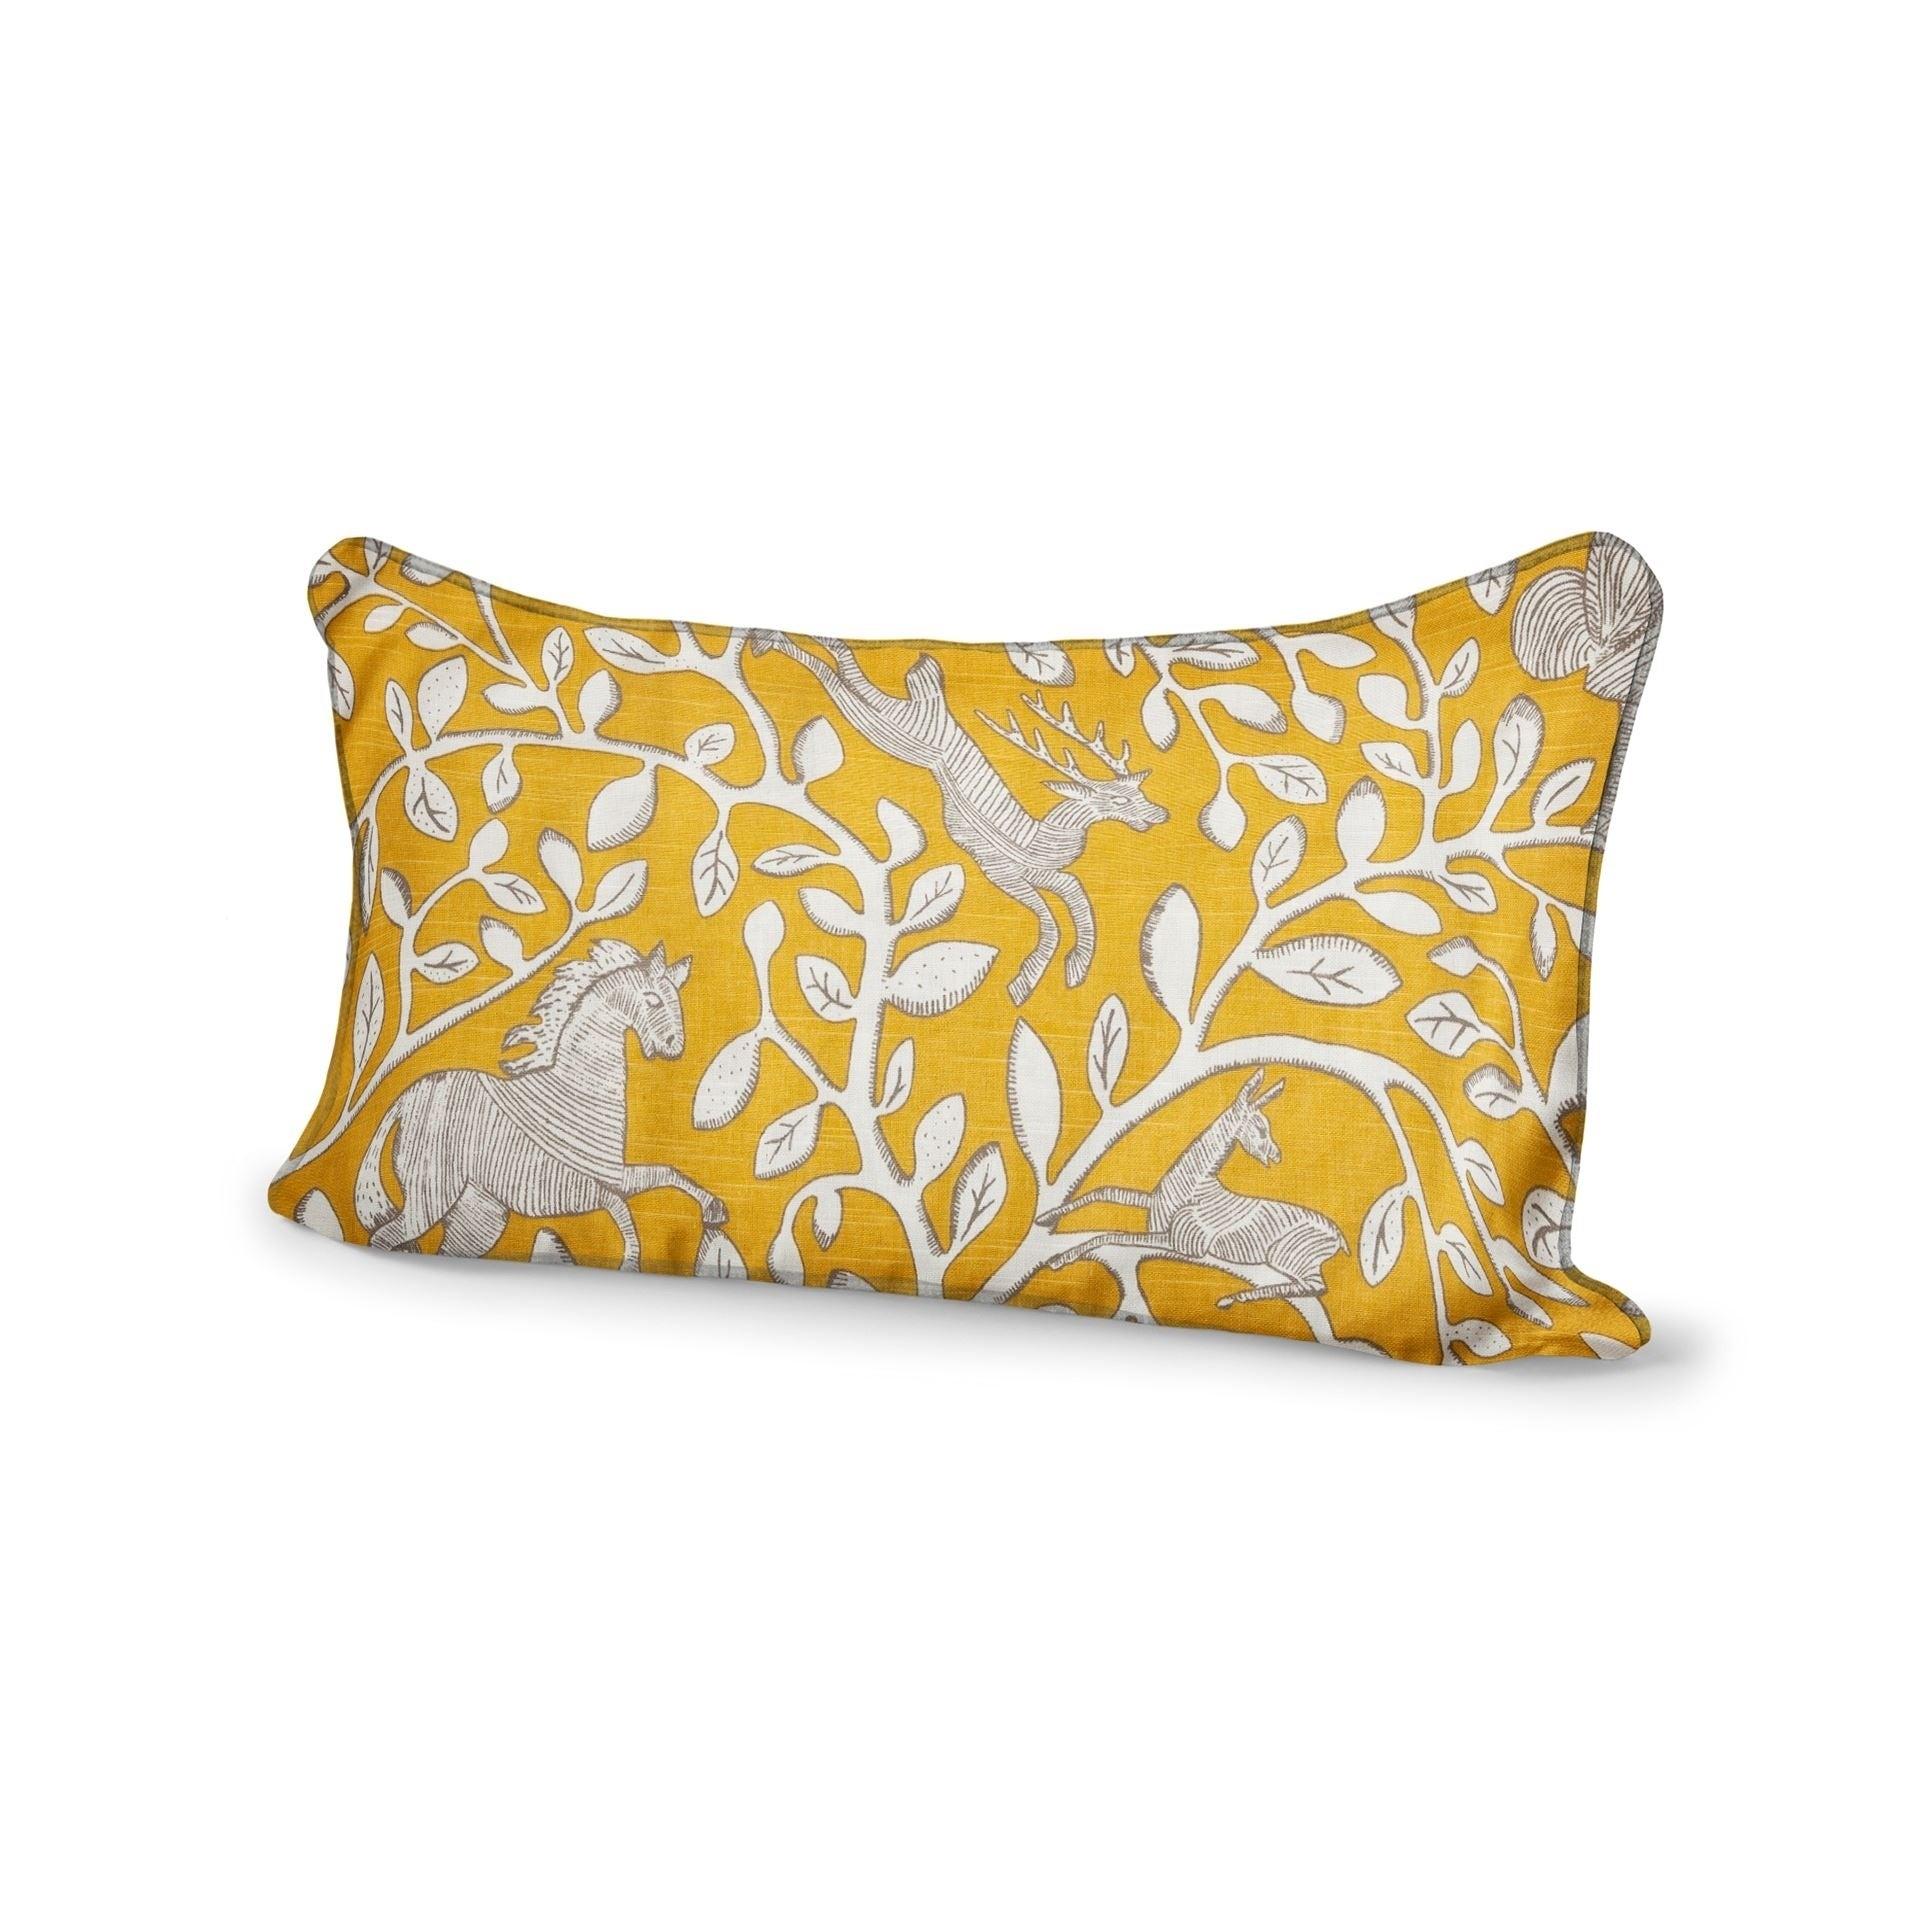 Mercana Dahlia V 13 x 21 (cover only) Decorative Pillow